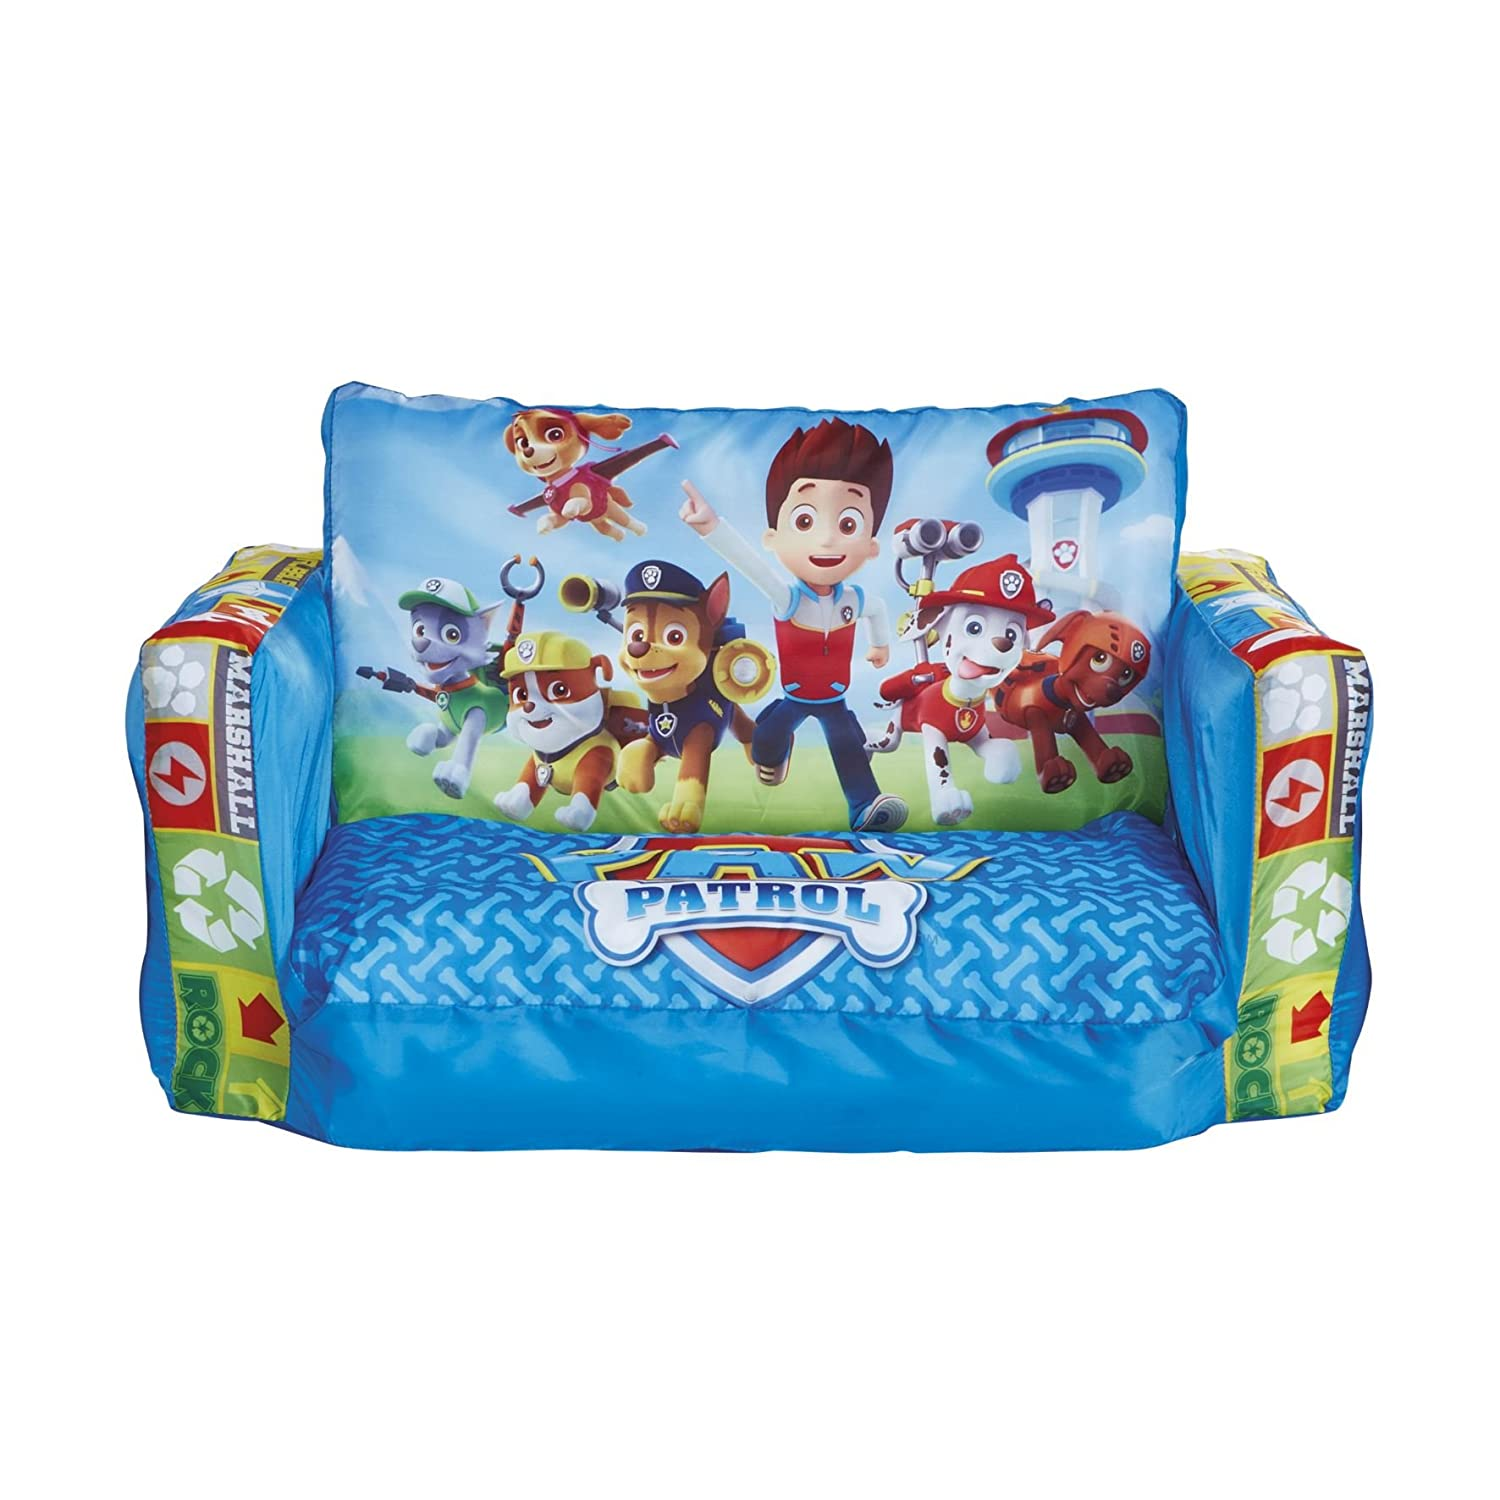 Paw Patrol 286PAW Flip Out Sofa